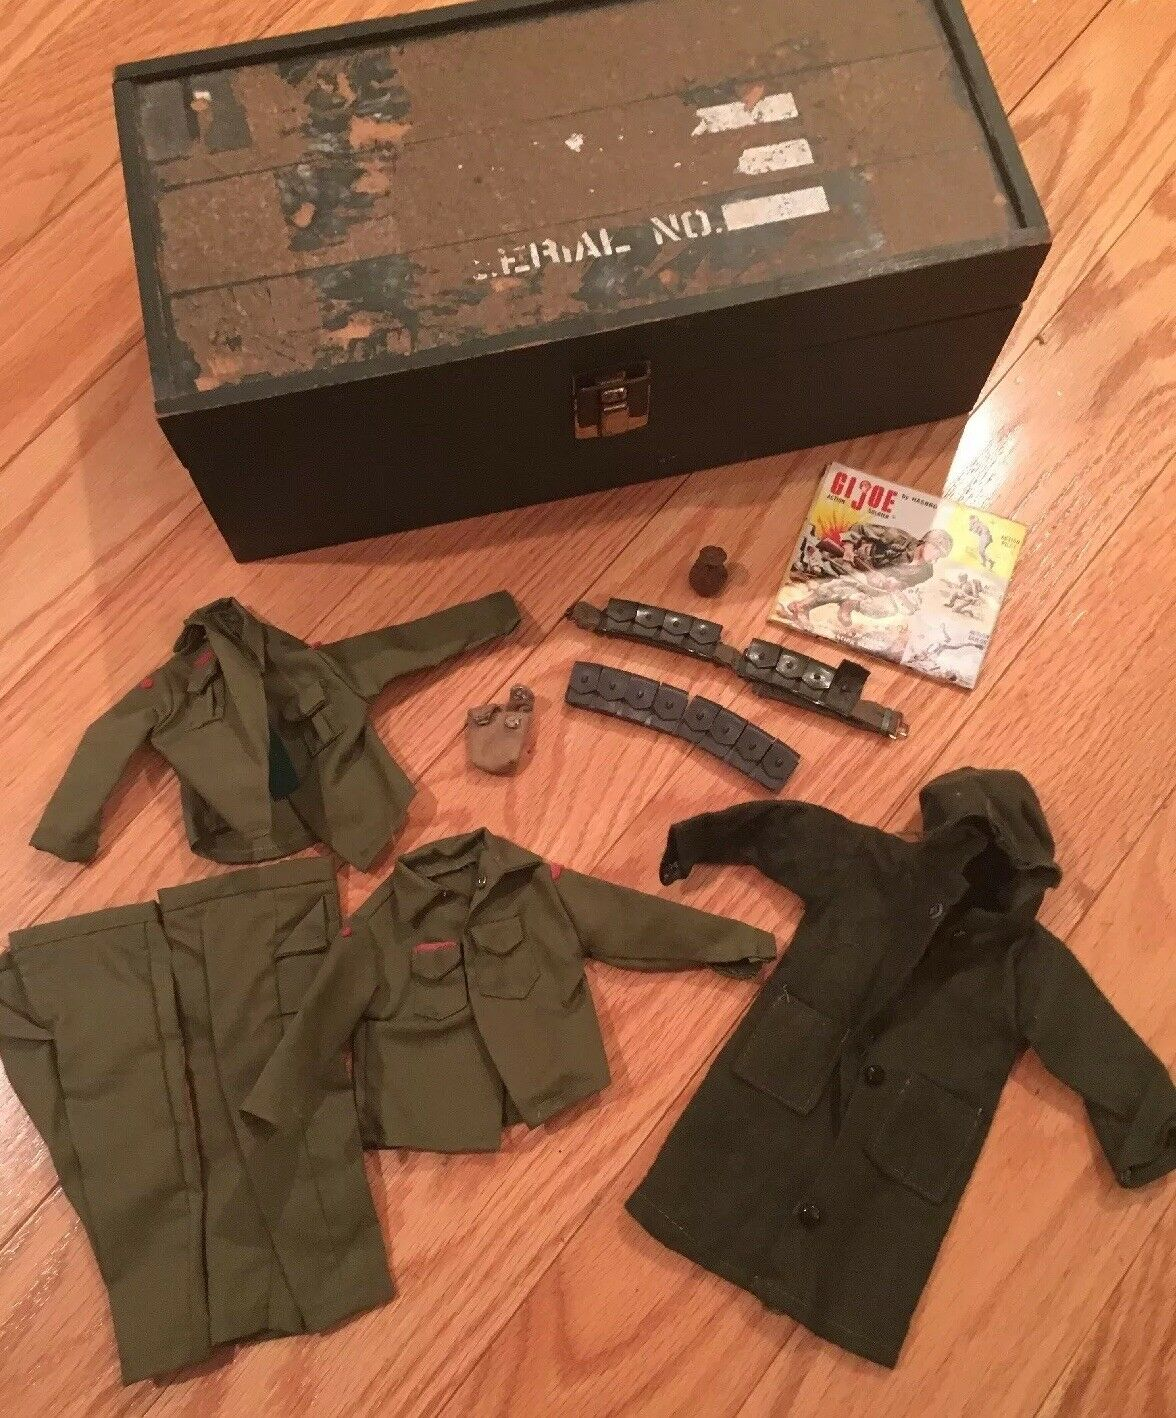 GI Joe 1964 Hasbro long coat, belt with 4 ammo cases, canteen pouch, 2 uniforms